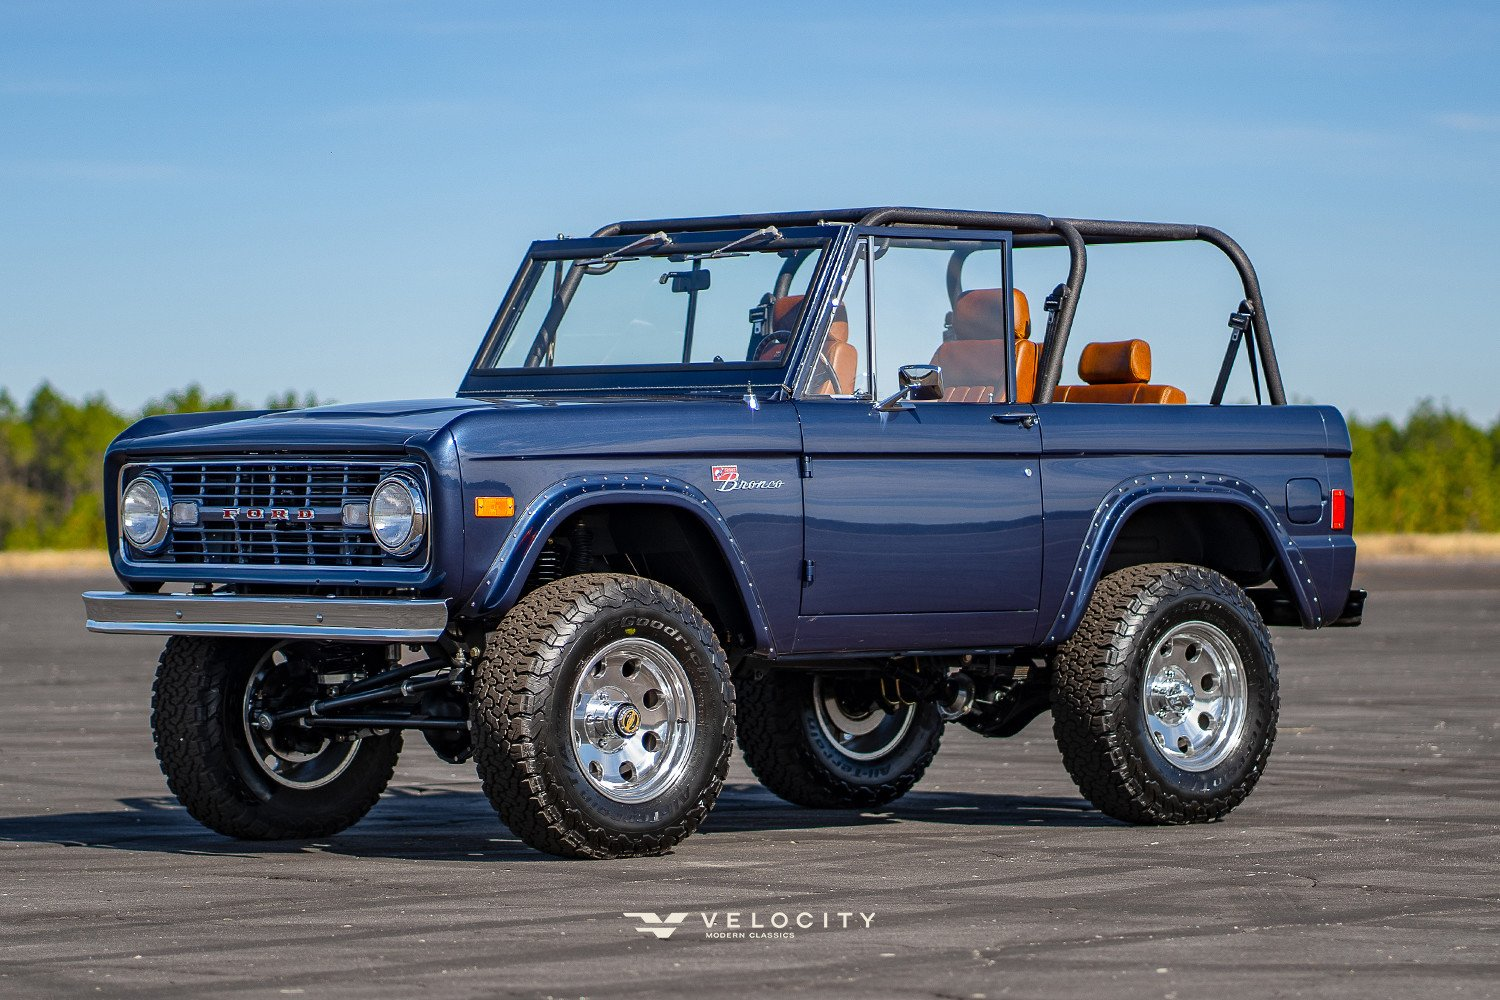 1977 Ford Bronco For Sale Near Pensacola Florida 32505 Classics On Autotrader